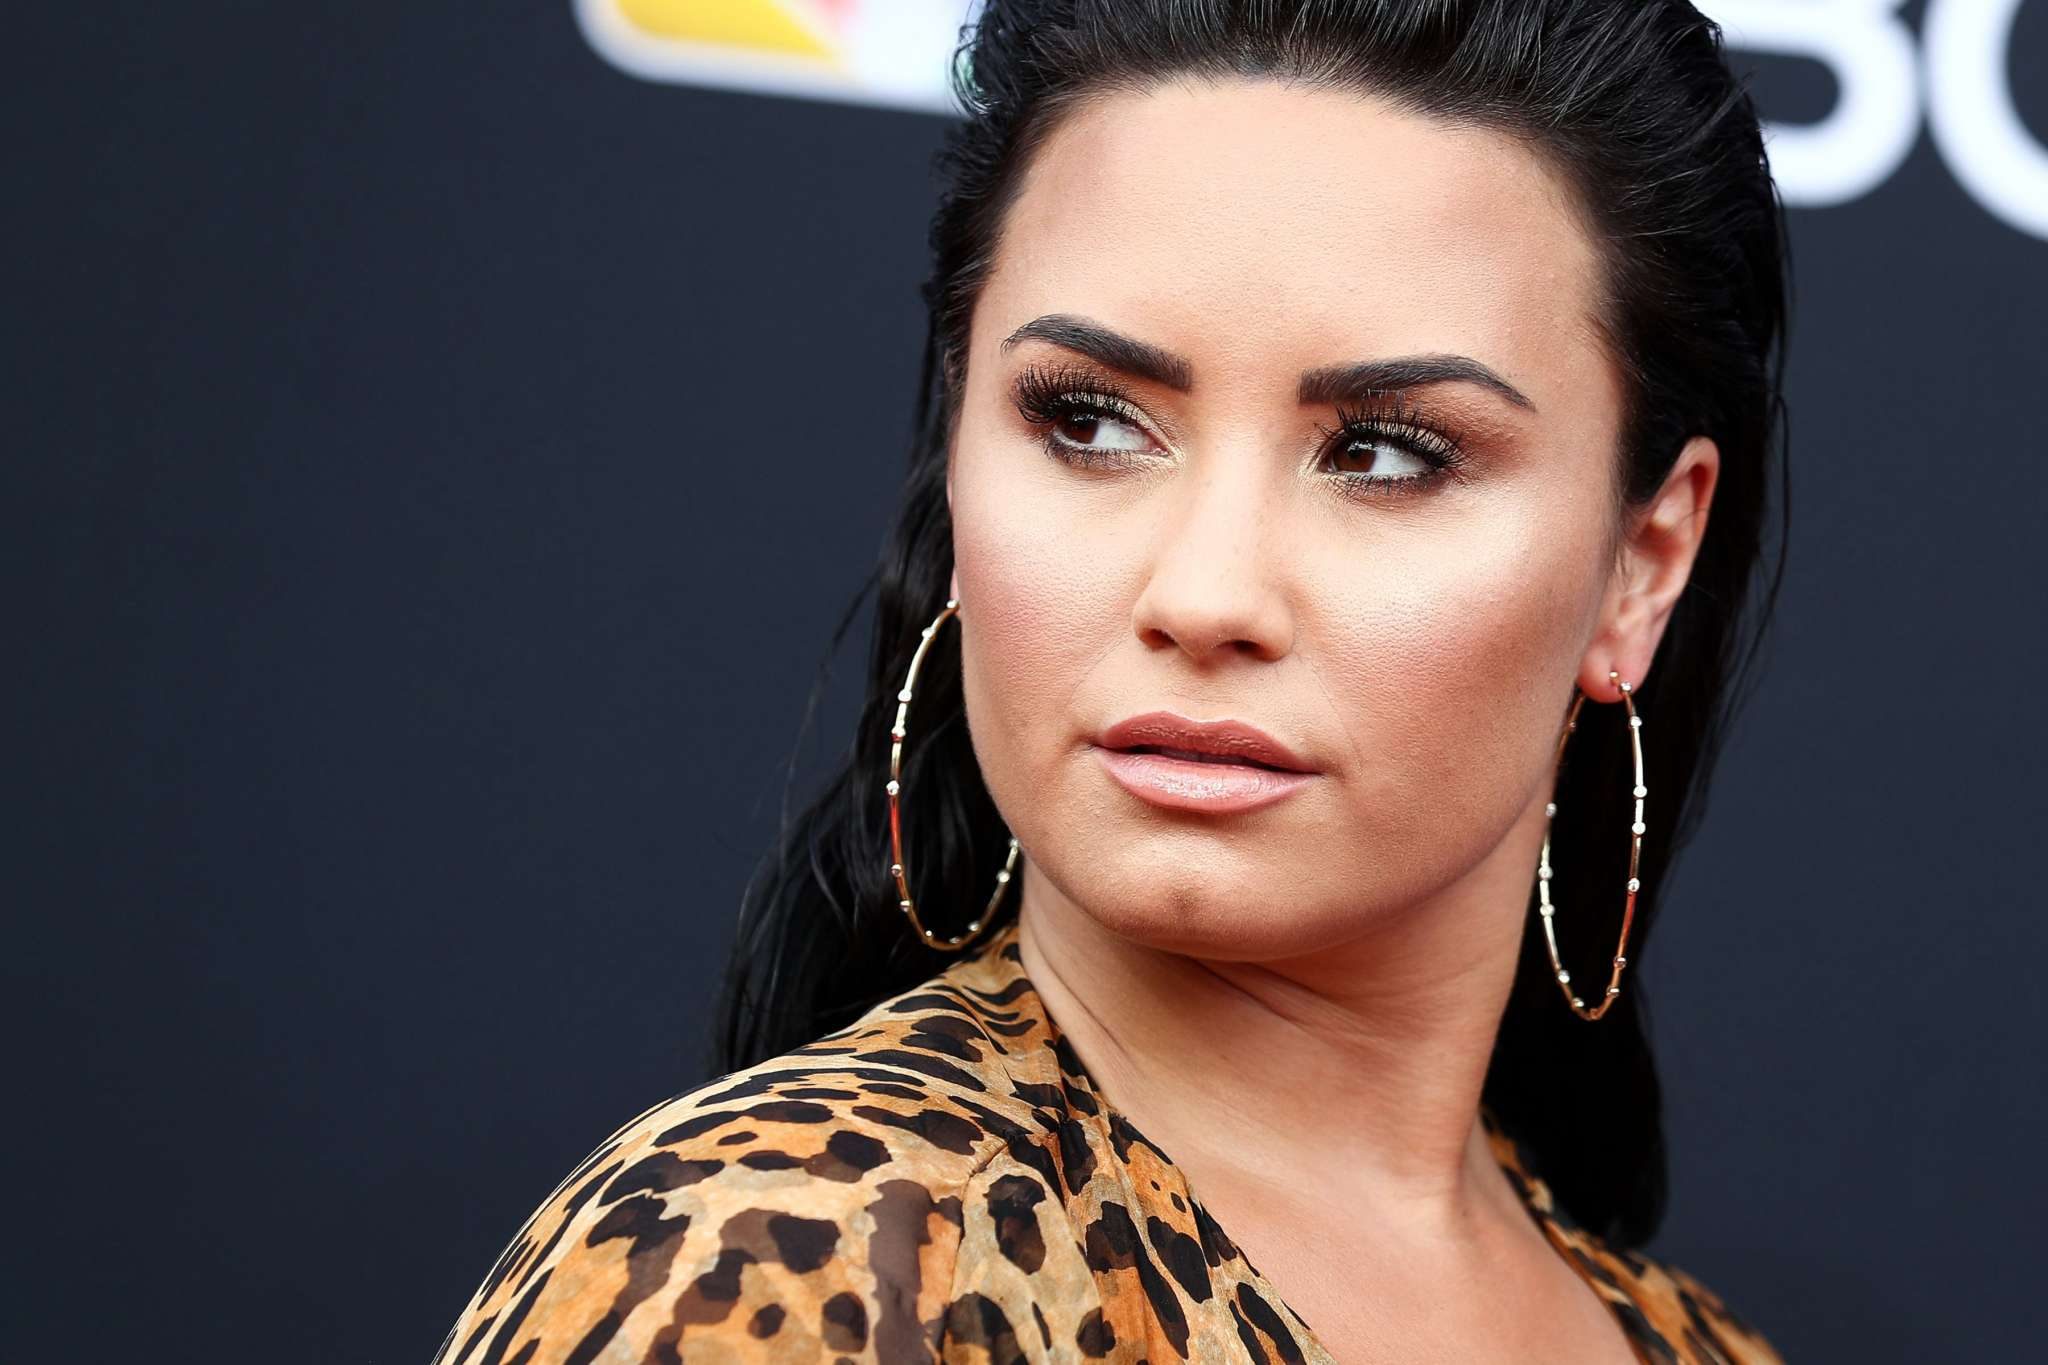 Demi Lovato Is Unfollowing Her Famous Friends On Instagram